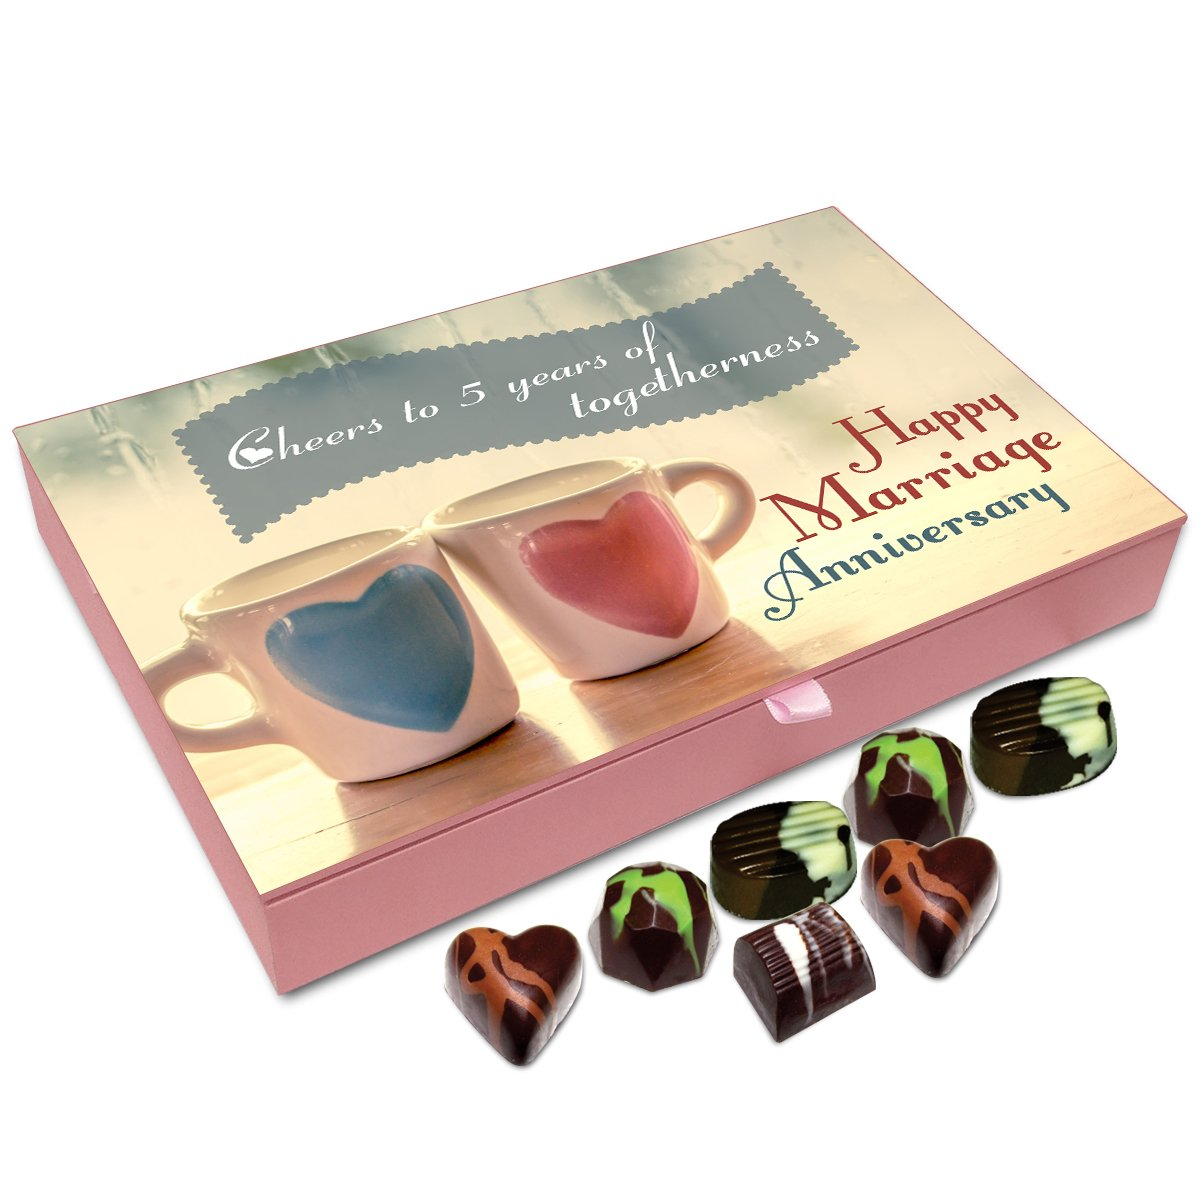 Chocholik Anniversary Gift Box – Cheers to Five Years of Togetherness Chocolate Box – 12pc